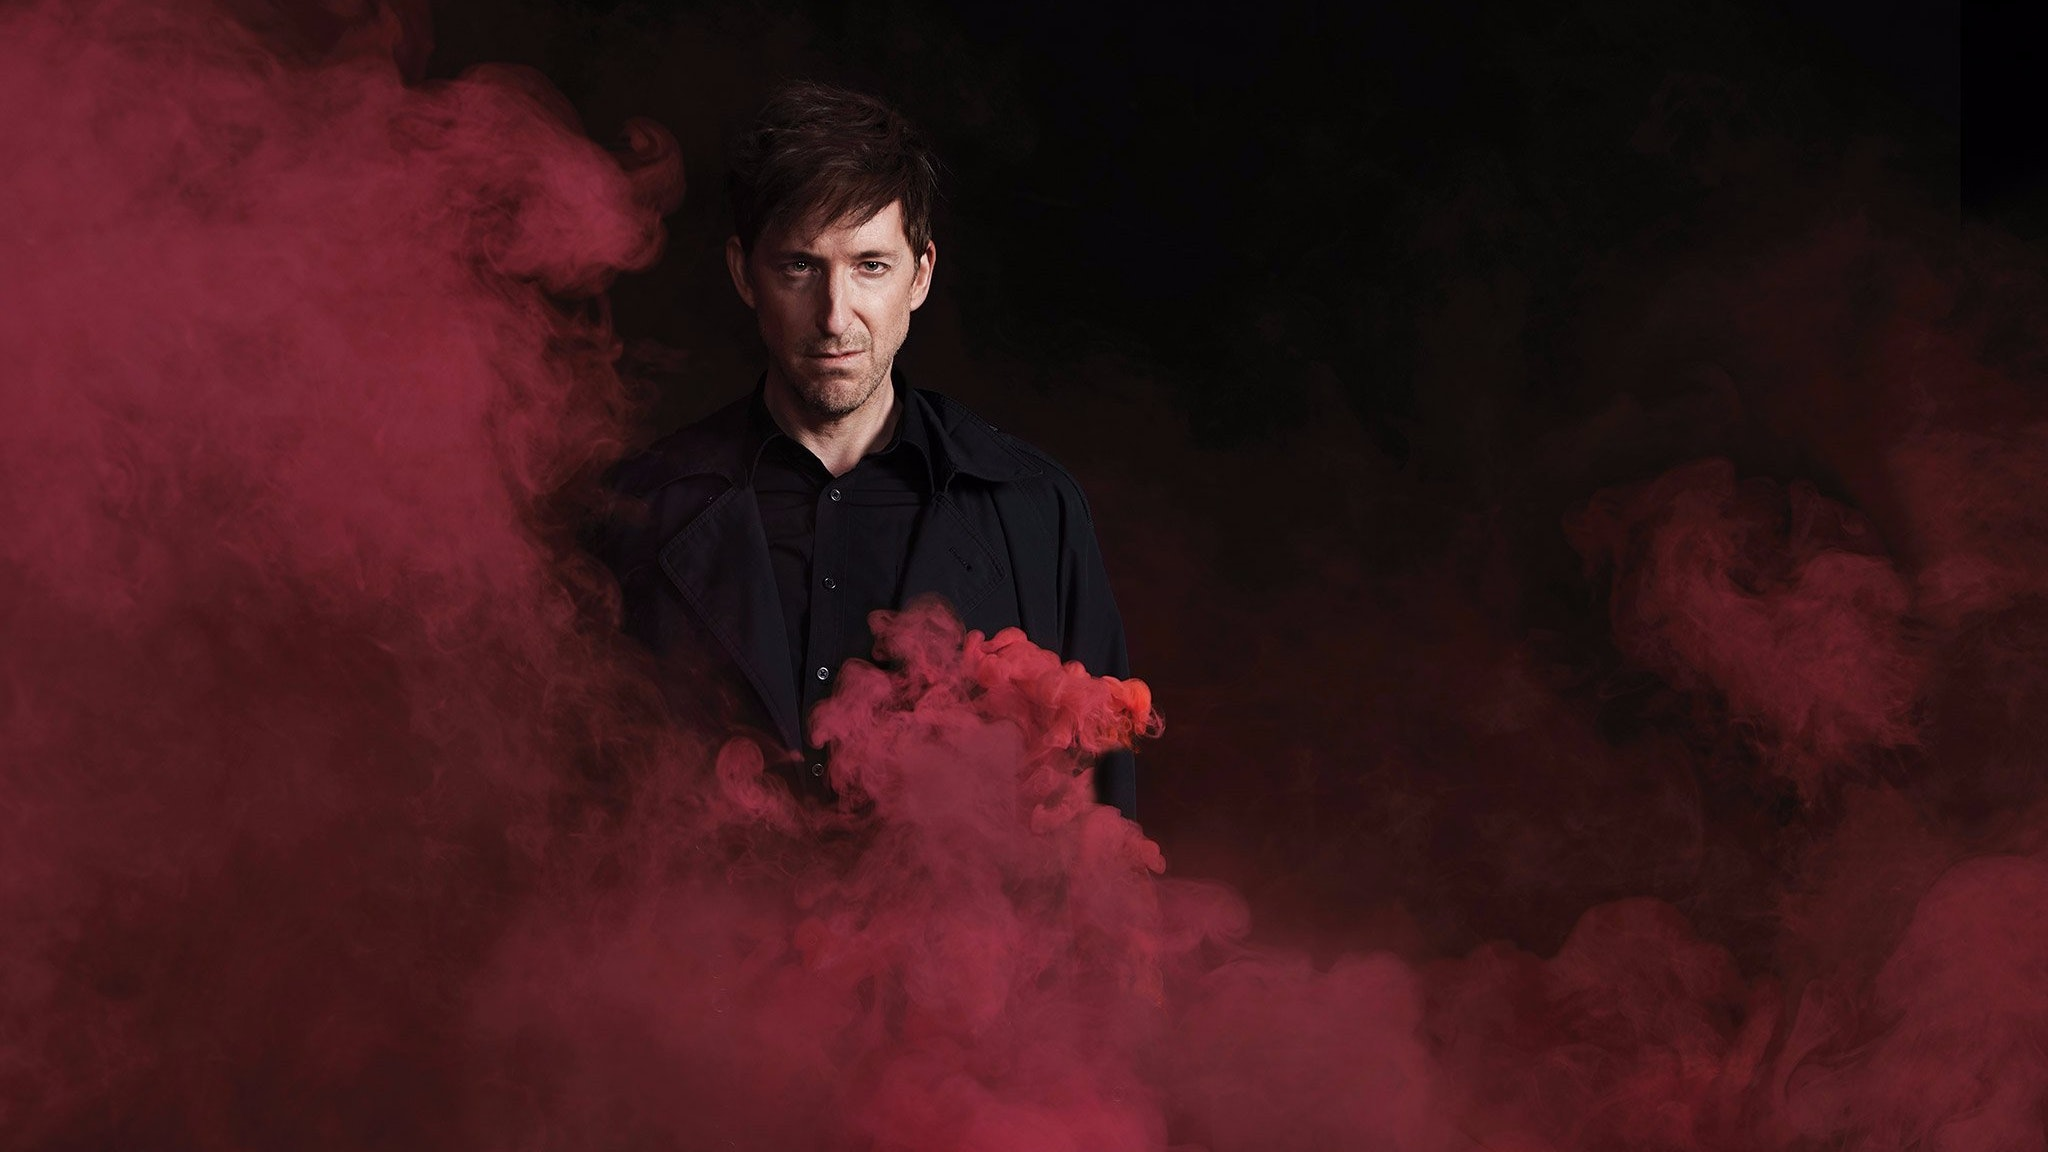 A man in black clothing looks directly forward as red smoke billows around him